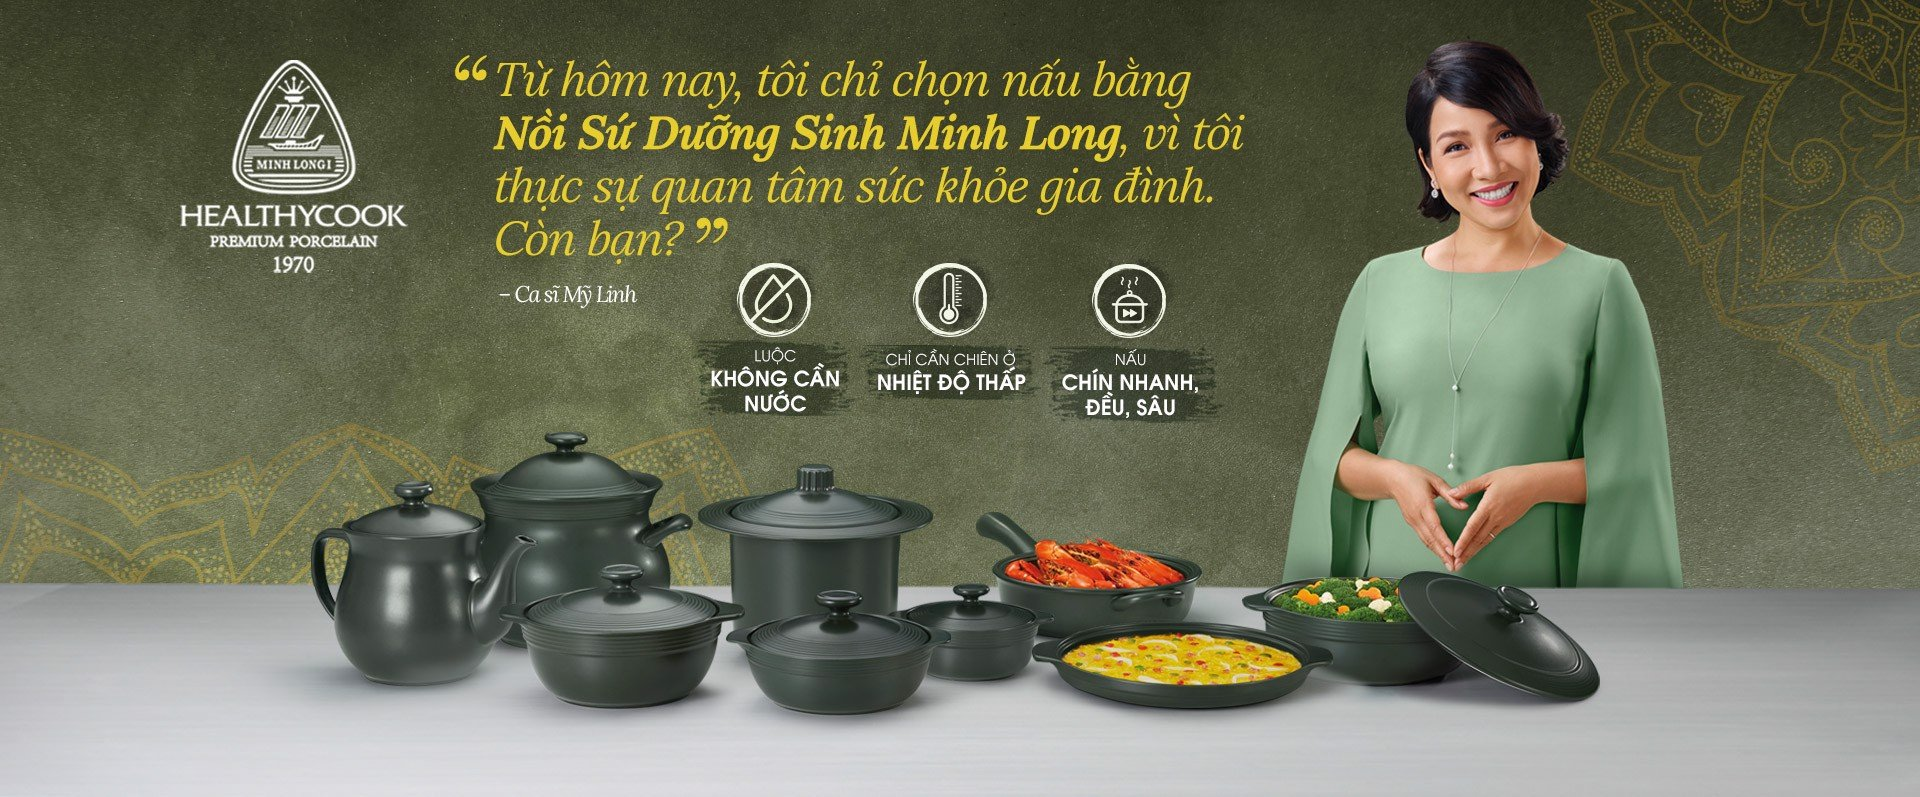 My Linh likes to eat self-cultivation vegetables, cooked with pot of nourishment